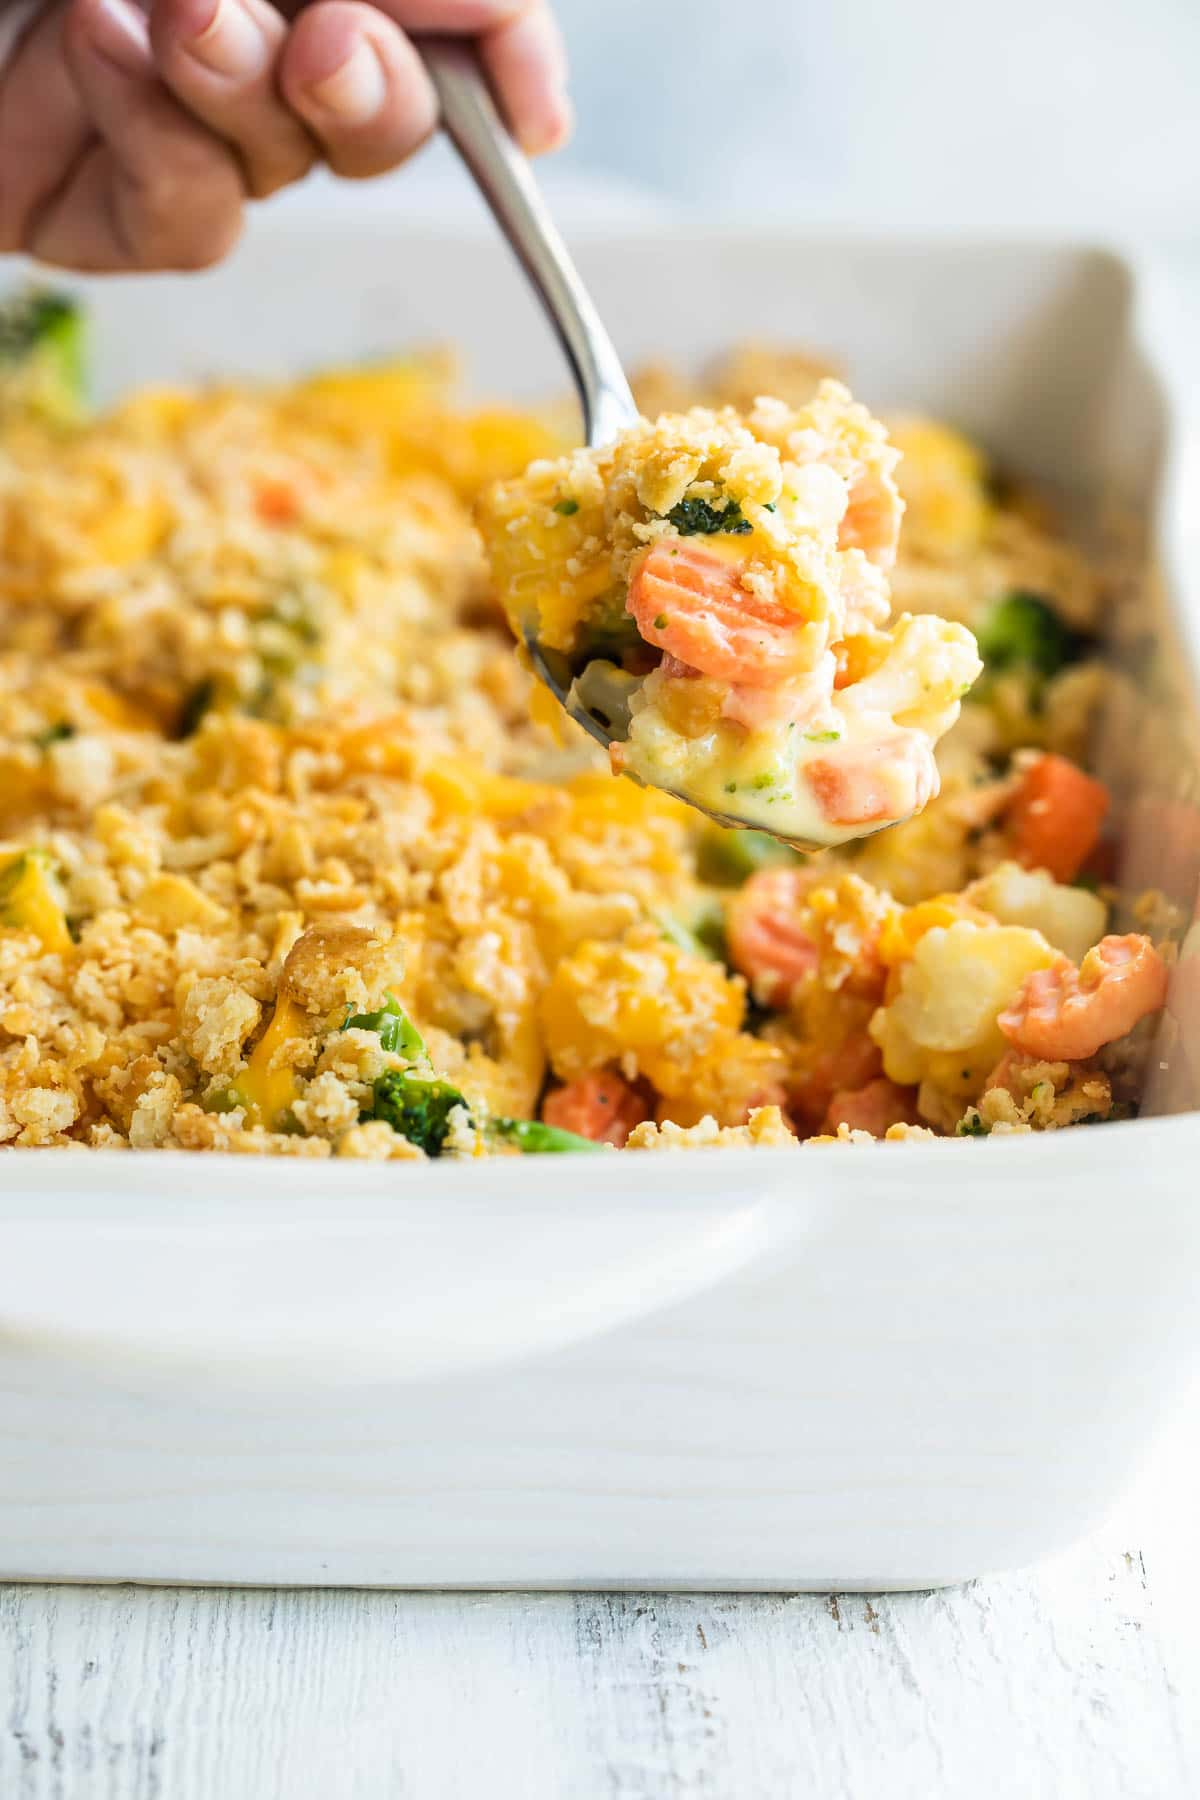 Baked vegetable casserole in a baking dish.